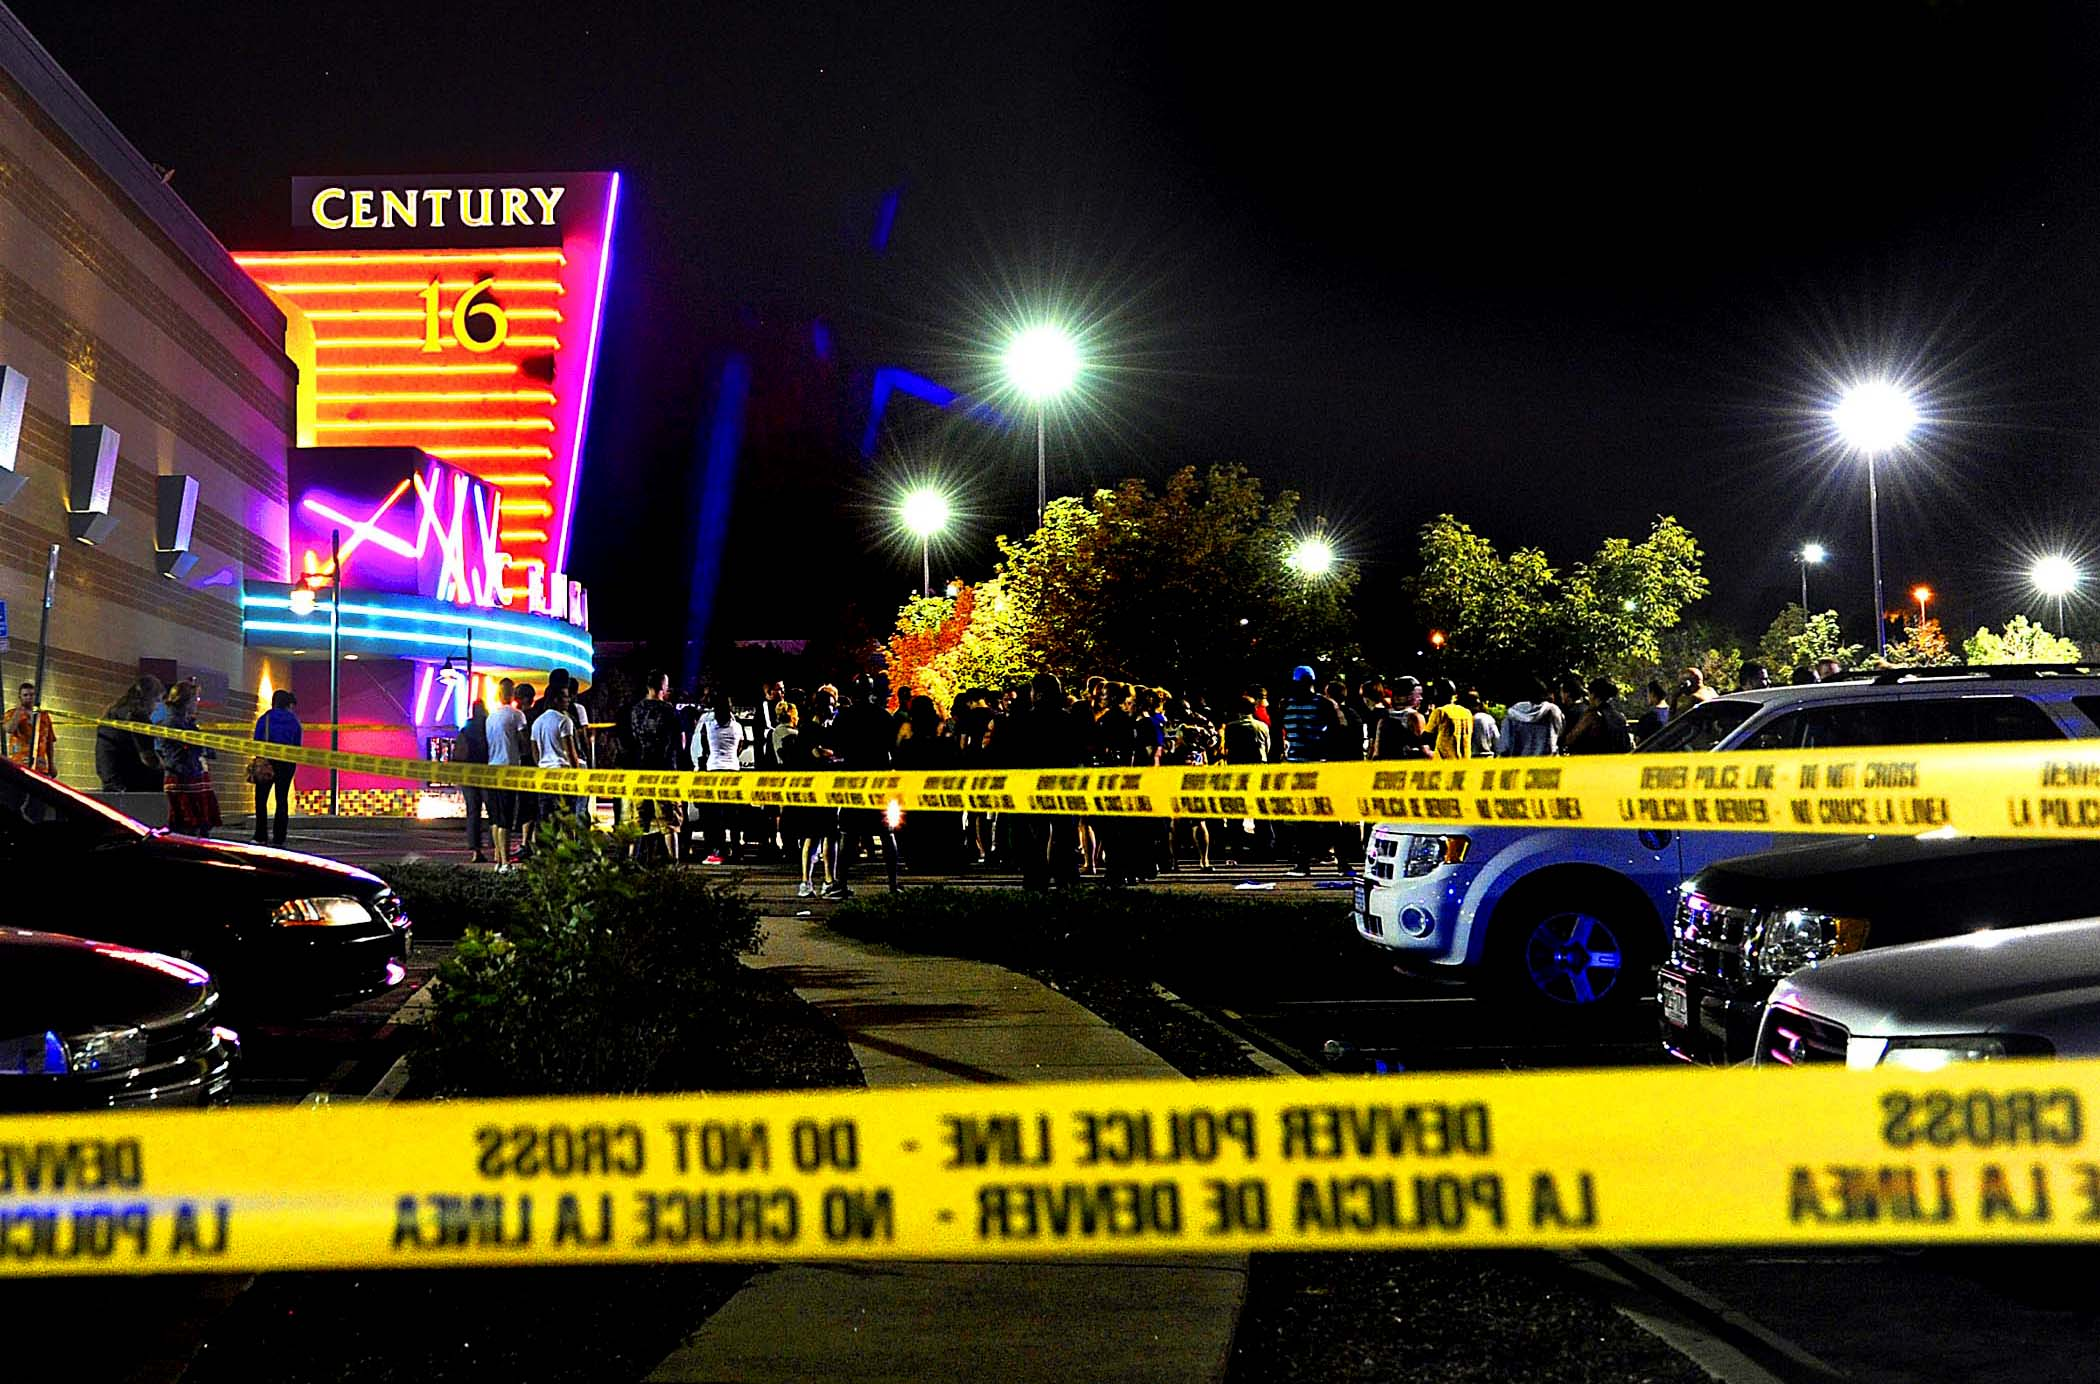 People gather outside the Century 16 movie theater in Aurora, Colorado, at the scene of the mass shooting. (Karl Gehring/Associated Press)